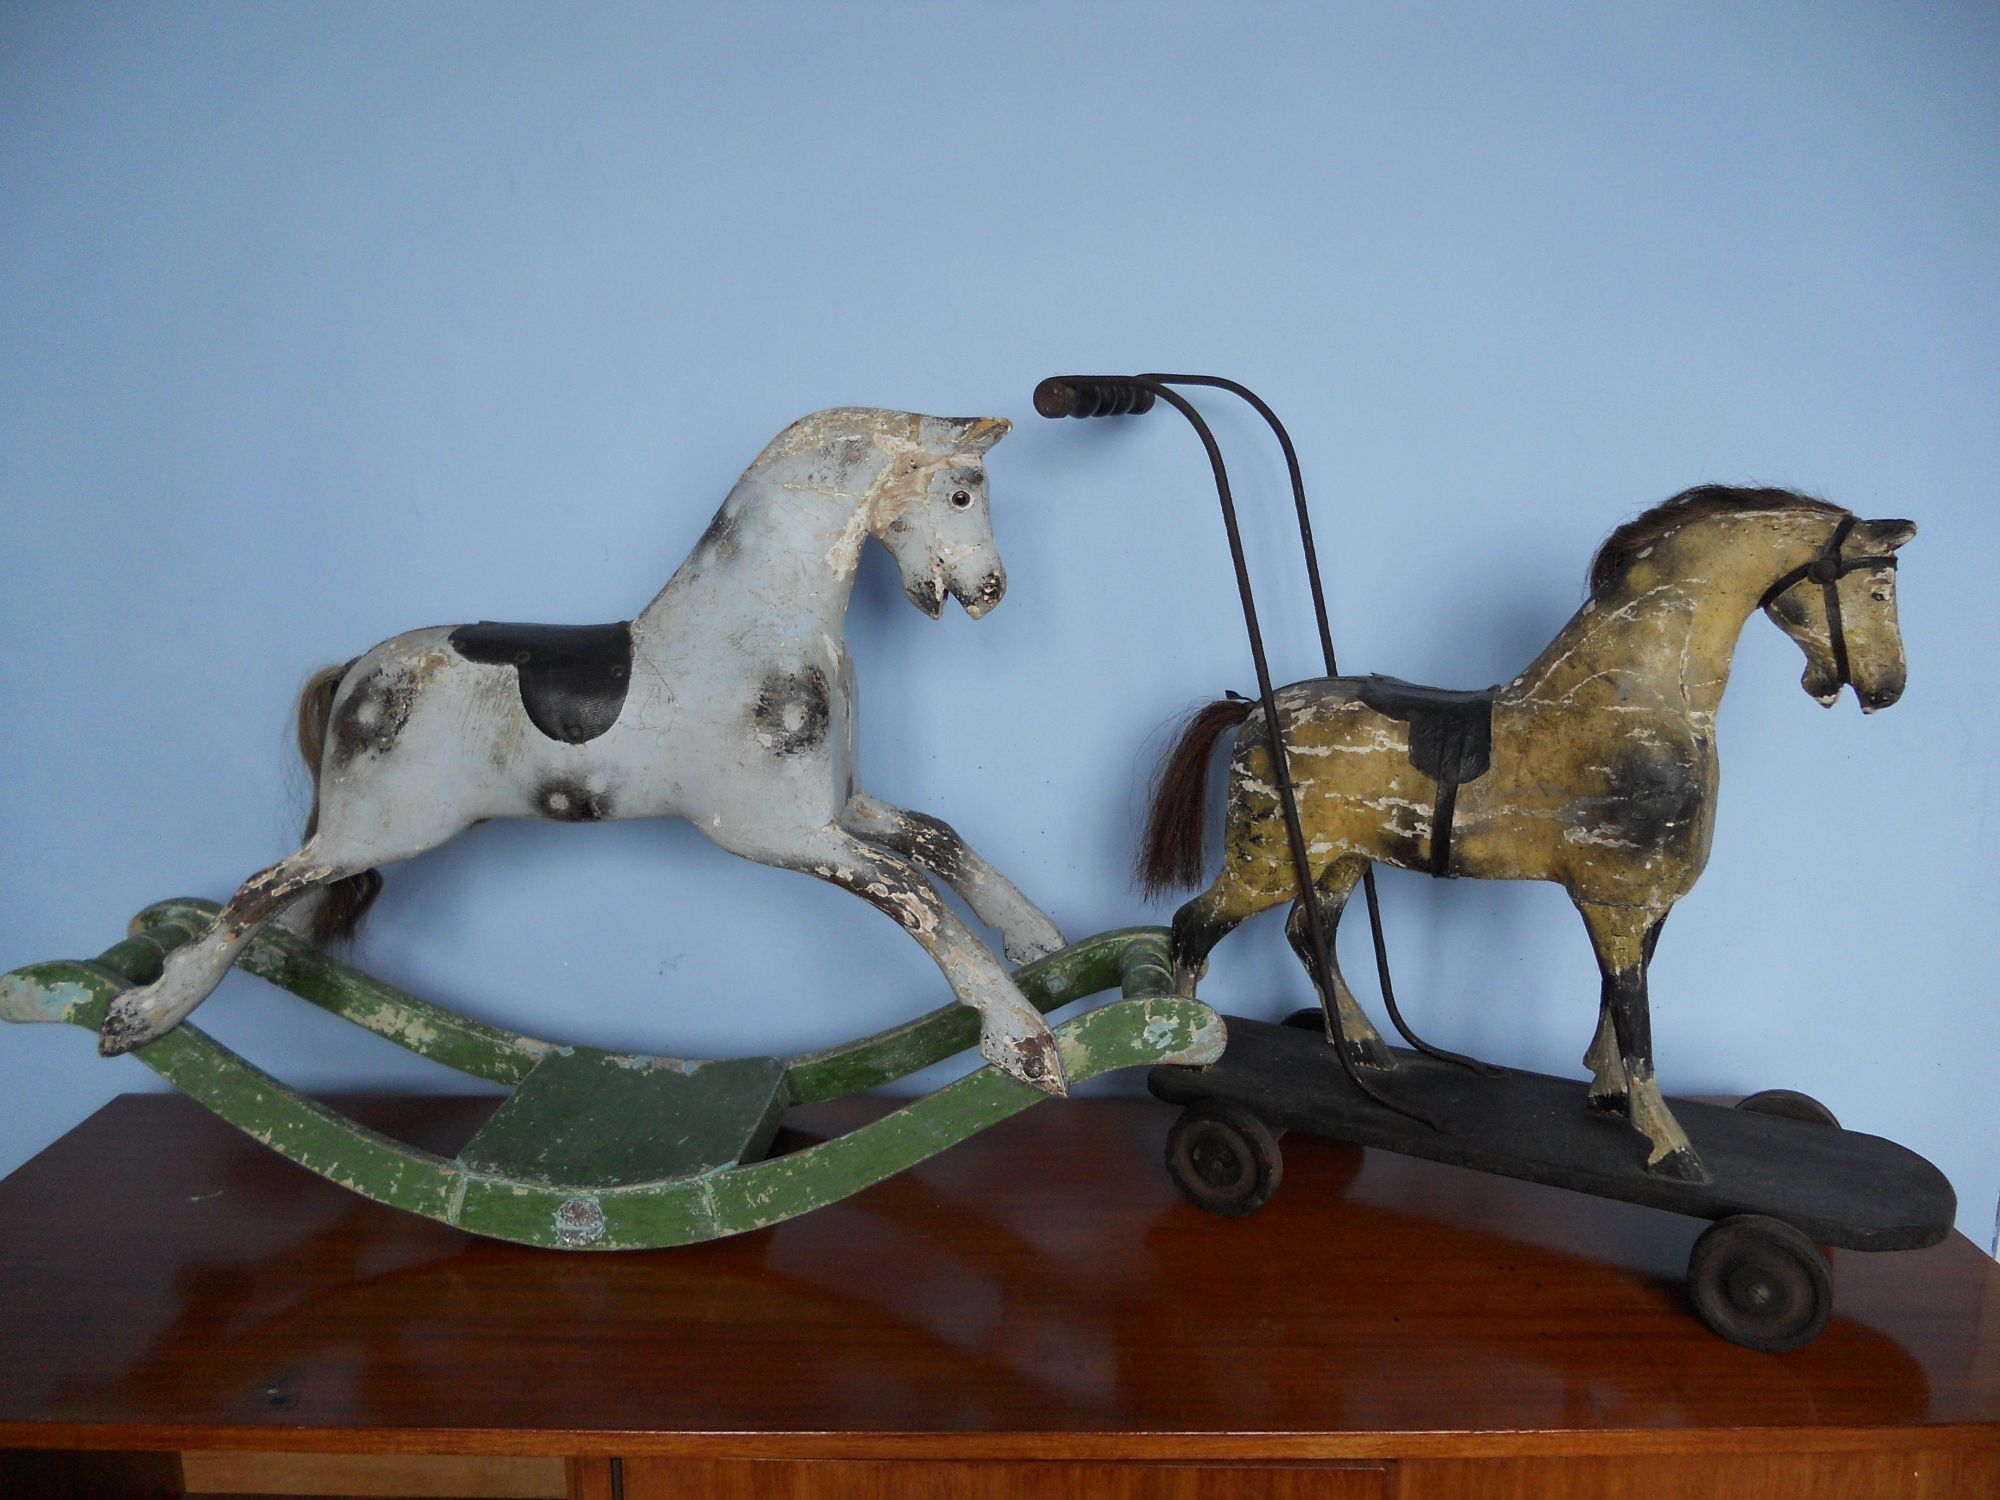 00 Lines Sportiboy bow rocking horse with original condition toy push horse.